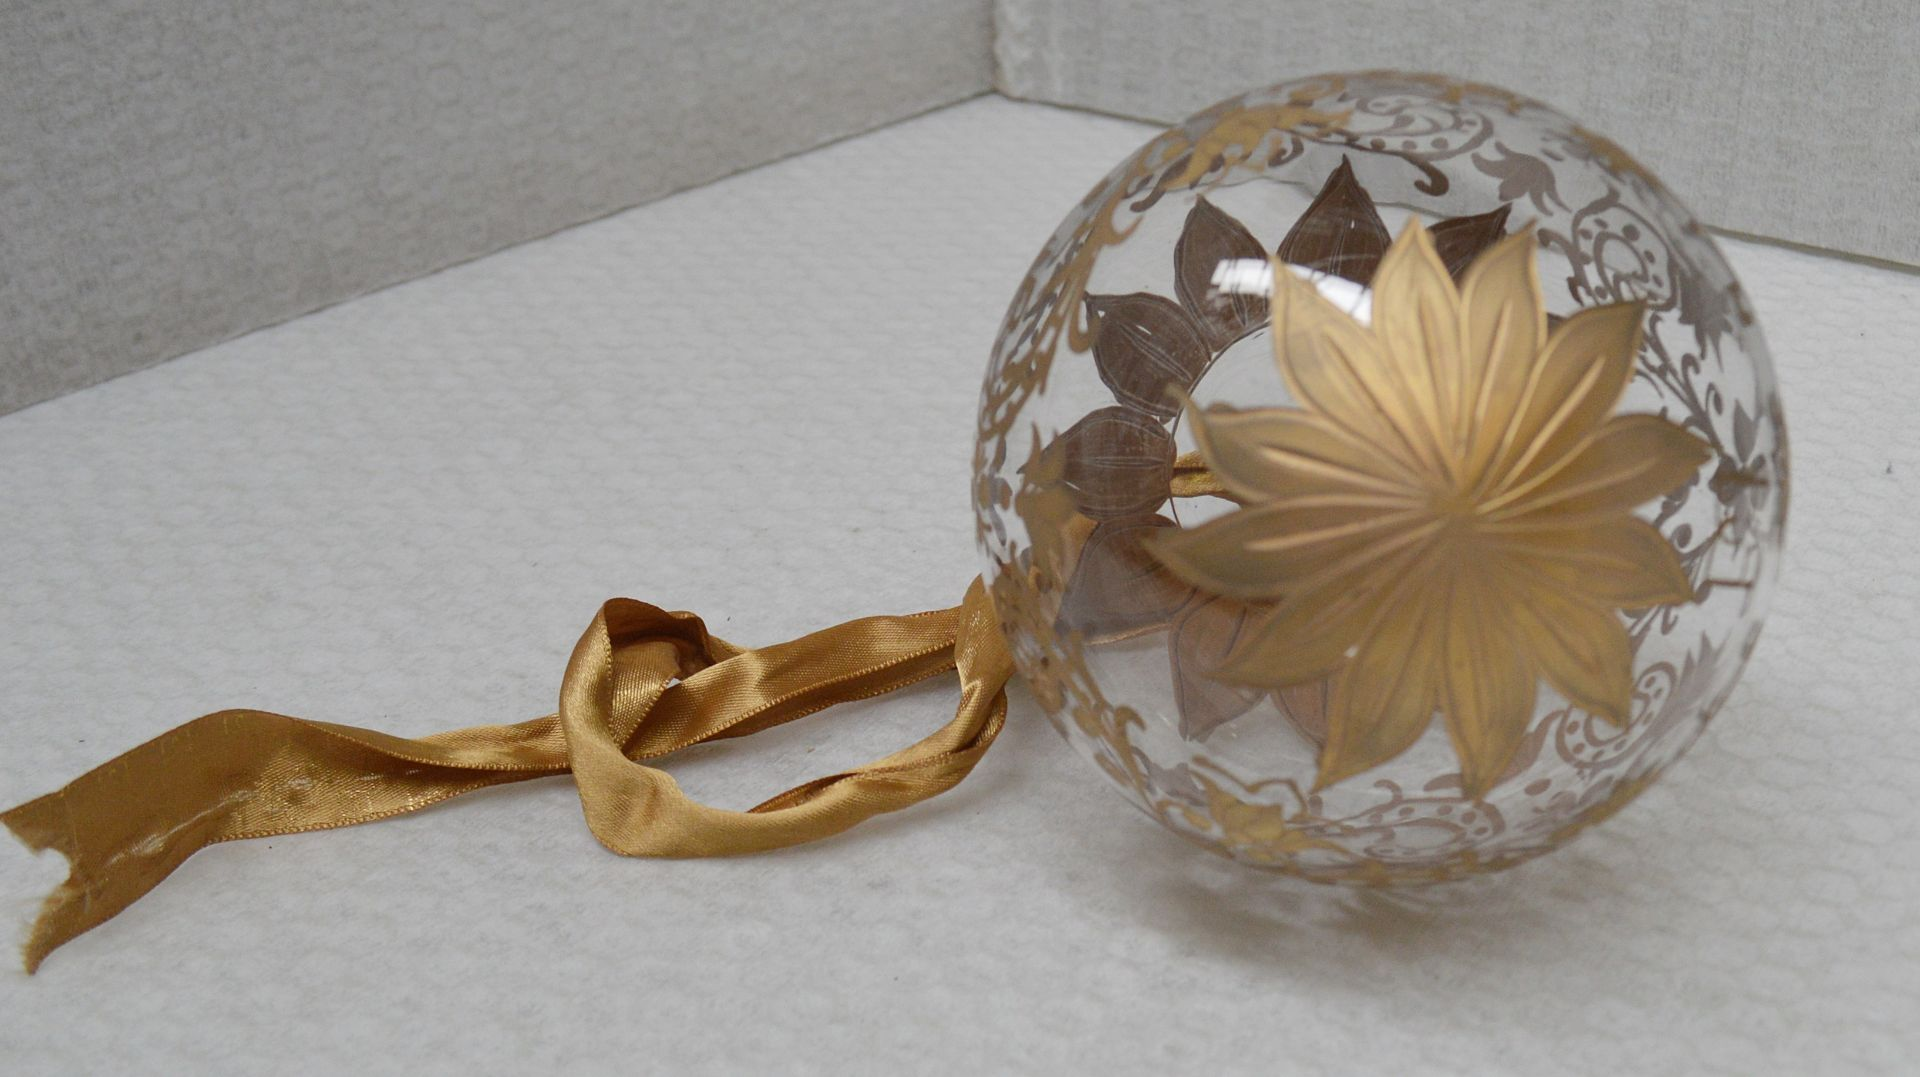 1 x BALDI 'Home Jewels' Italian Hand-crafted Artisan Christmas Tree Decoration In Gold - RRP £124.00 - Image 2 of 4